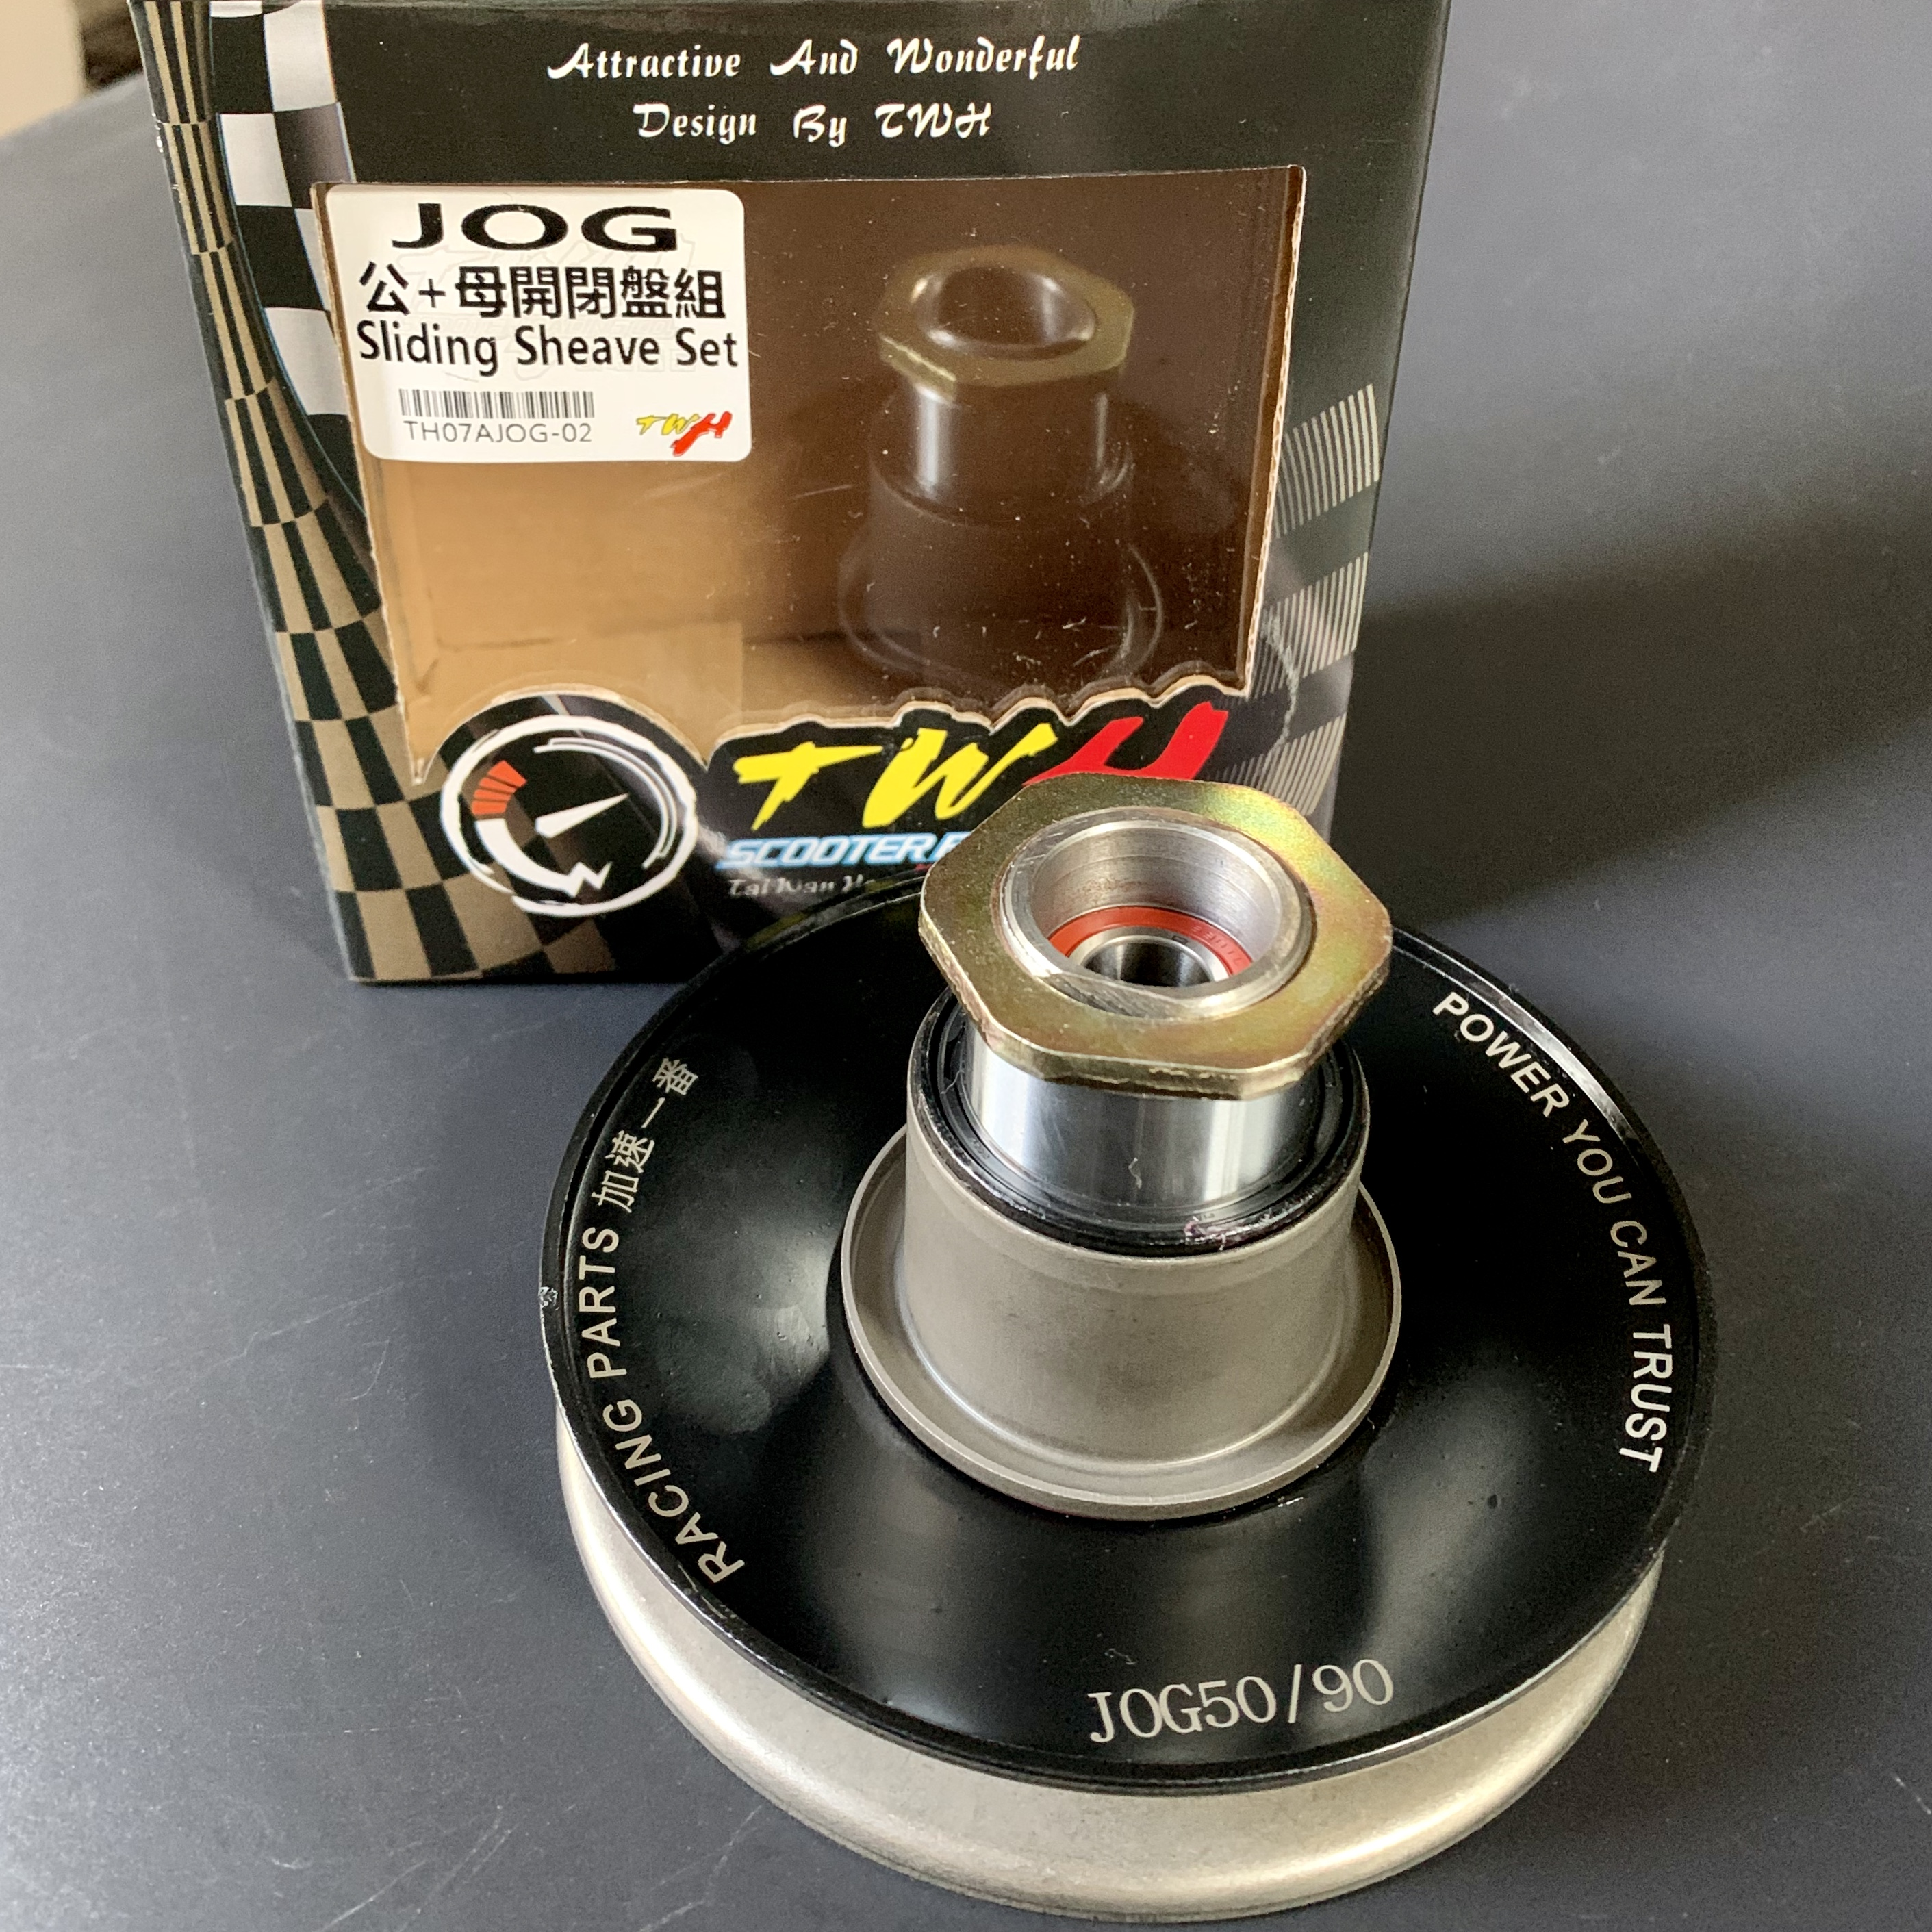 Torque driver JOG50 JOG100 MIO115 BWS100 RS100 AXIS100 sport pulleys sliding sheave racing tuning parts jog bws 50 <font><b>90</b></font> 100 image